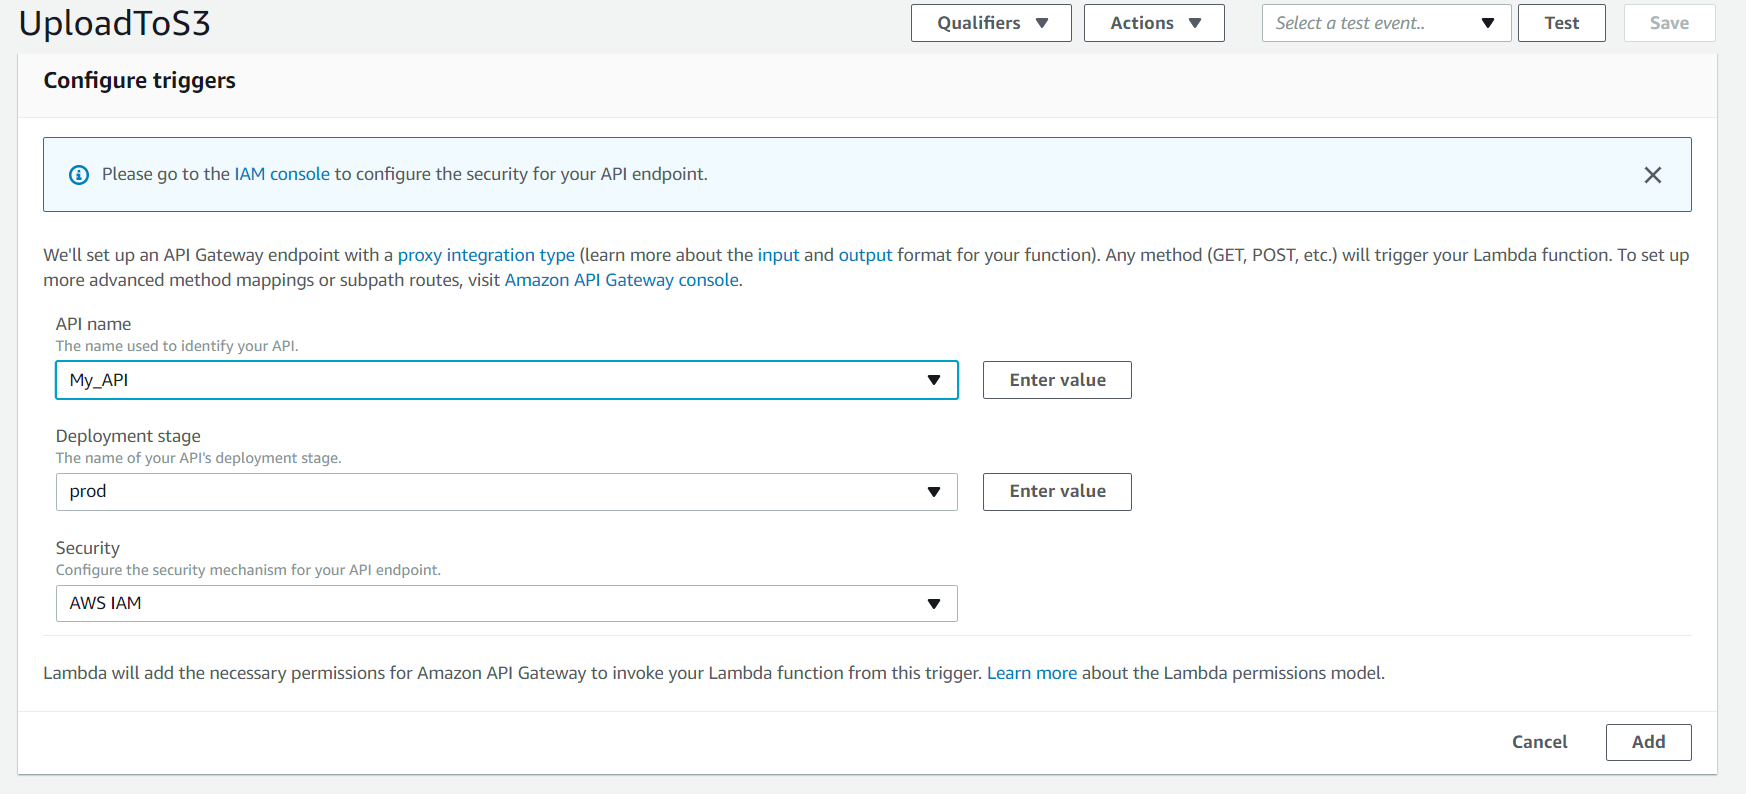 Image Upload and Retrieval from S3 Using AWS API Gateway and